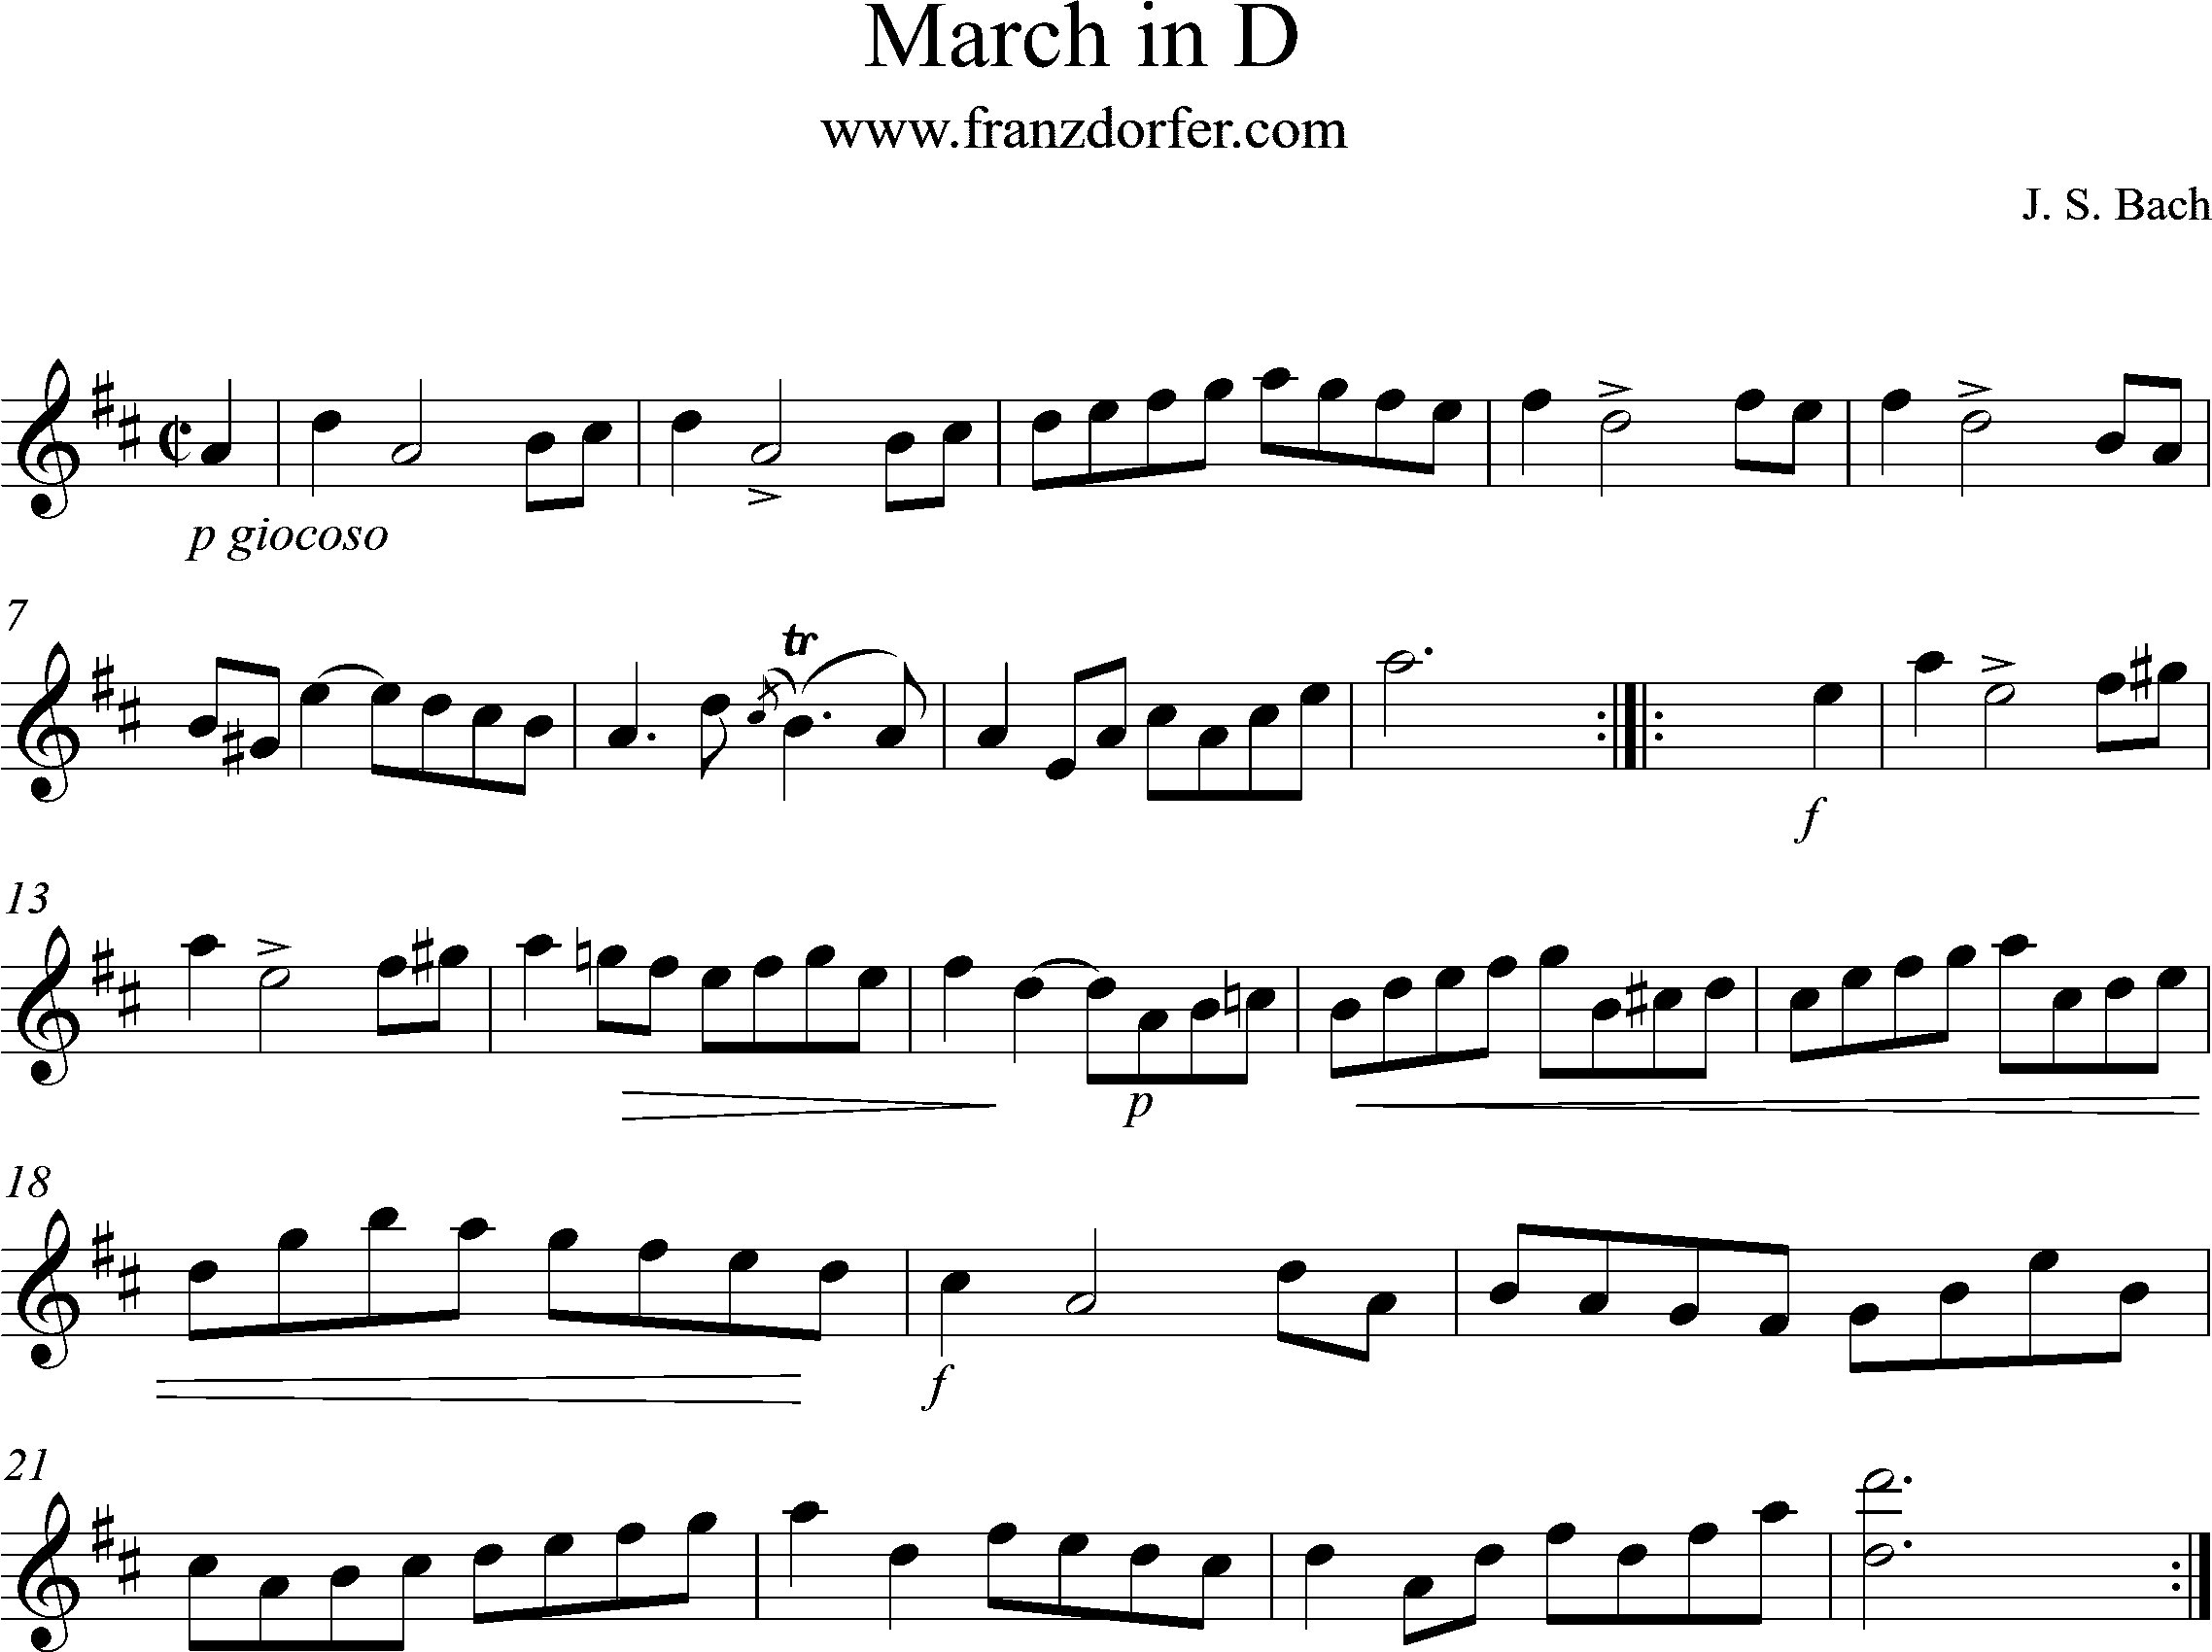 Clarinet, March in D